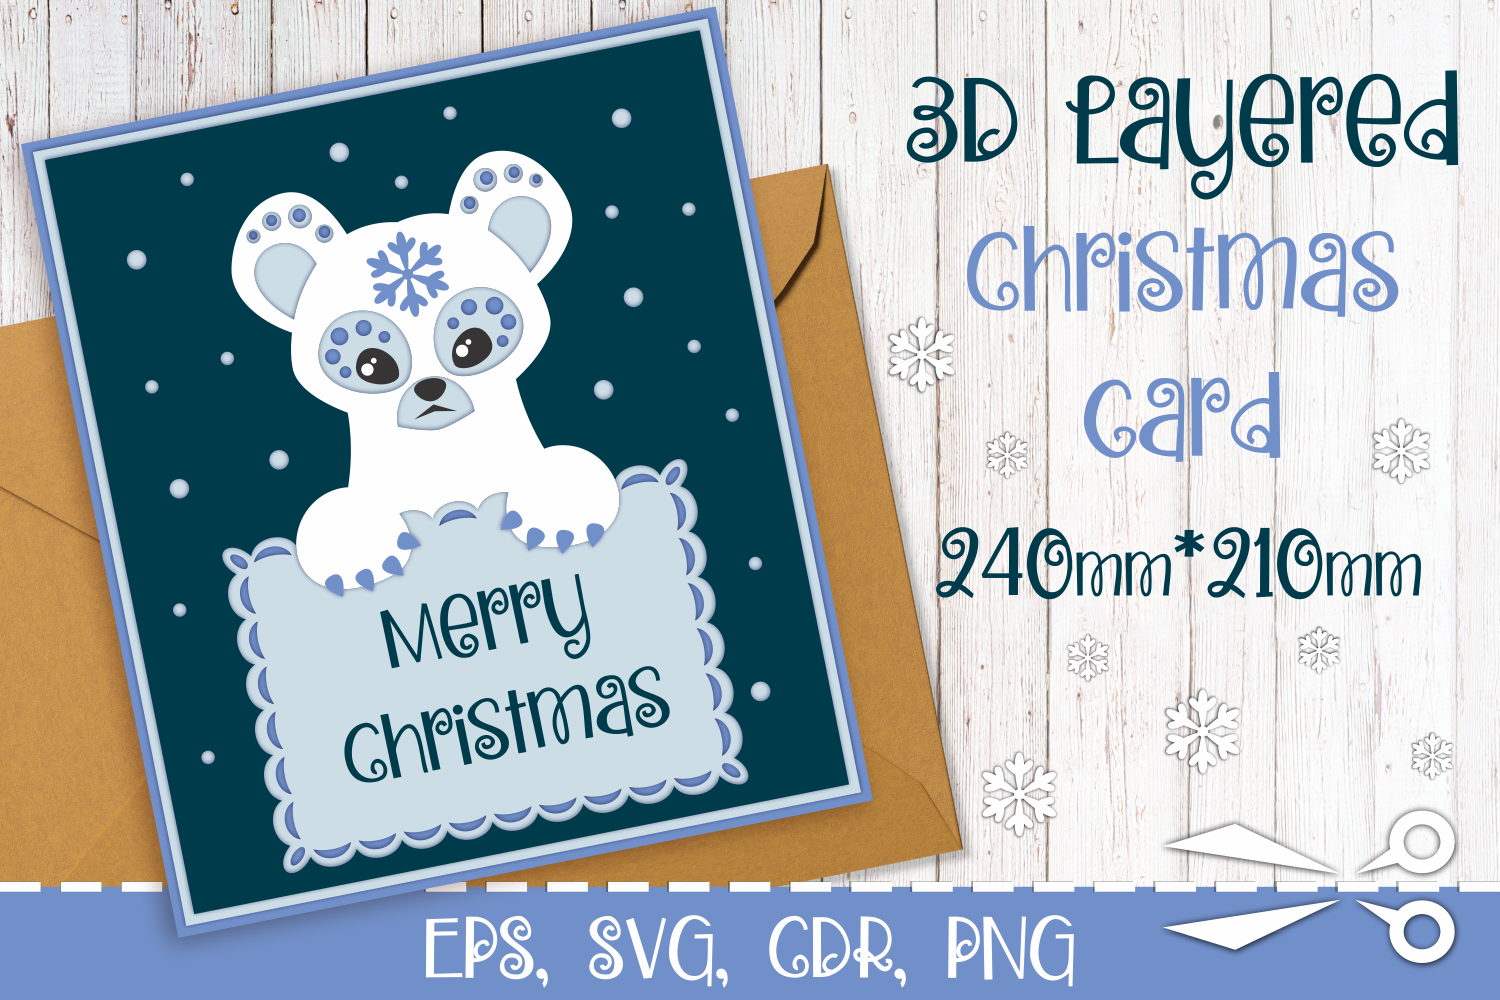 Download Free 3d Layered Christmas Card With Bear Graphic By Olga Belova for Cricut Explore, Silhouette and other cutting machines.